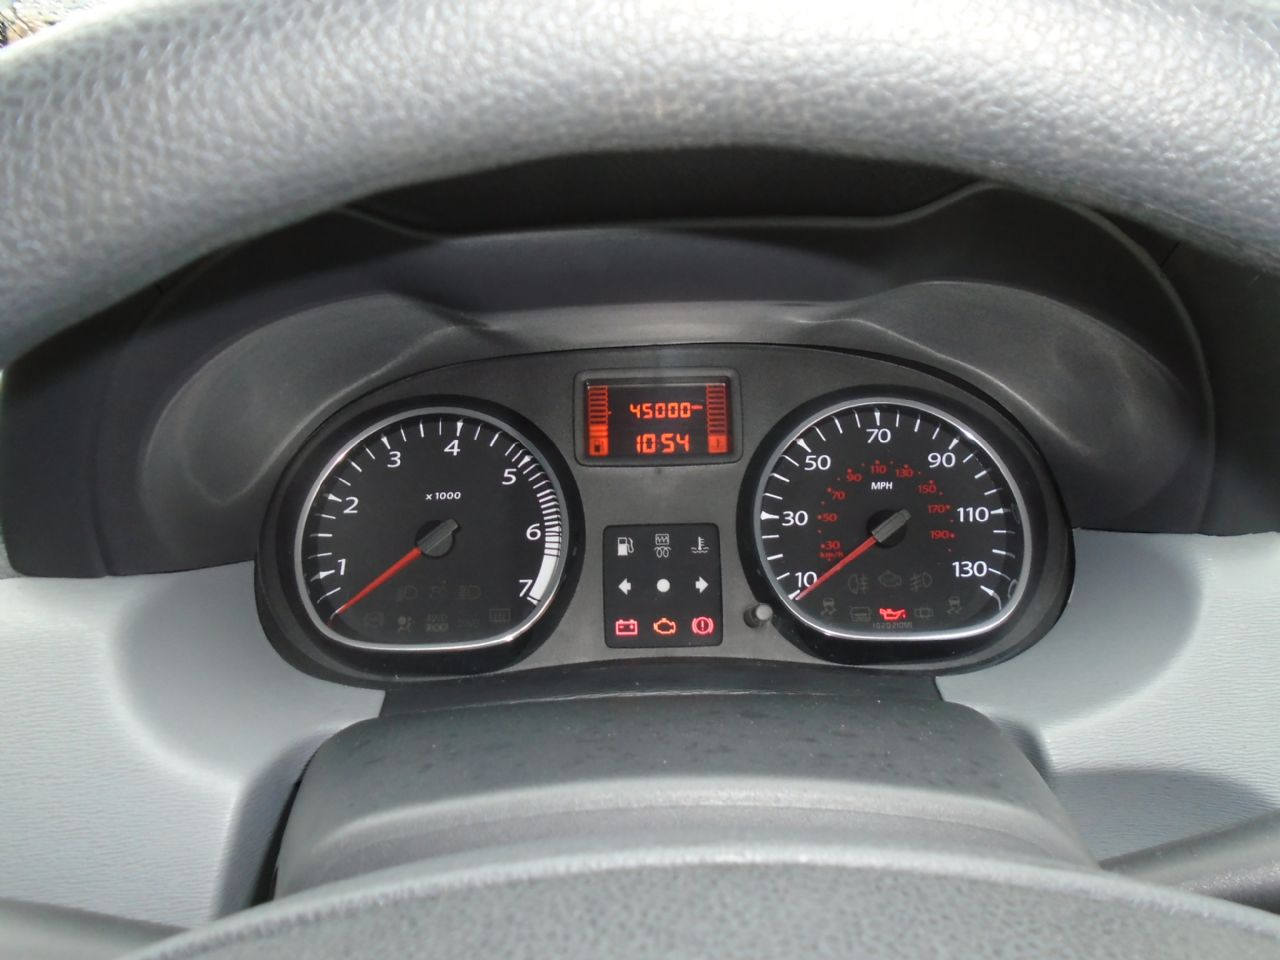 DACIA DUSTER Ambiance dCi 110 4x2 - Picture 8